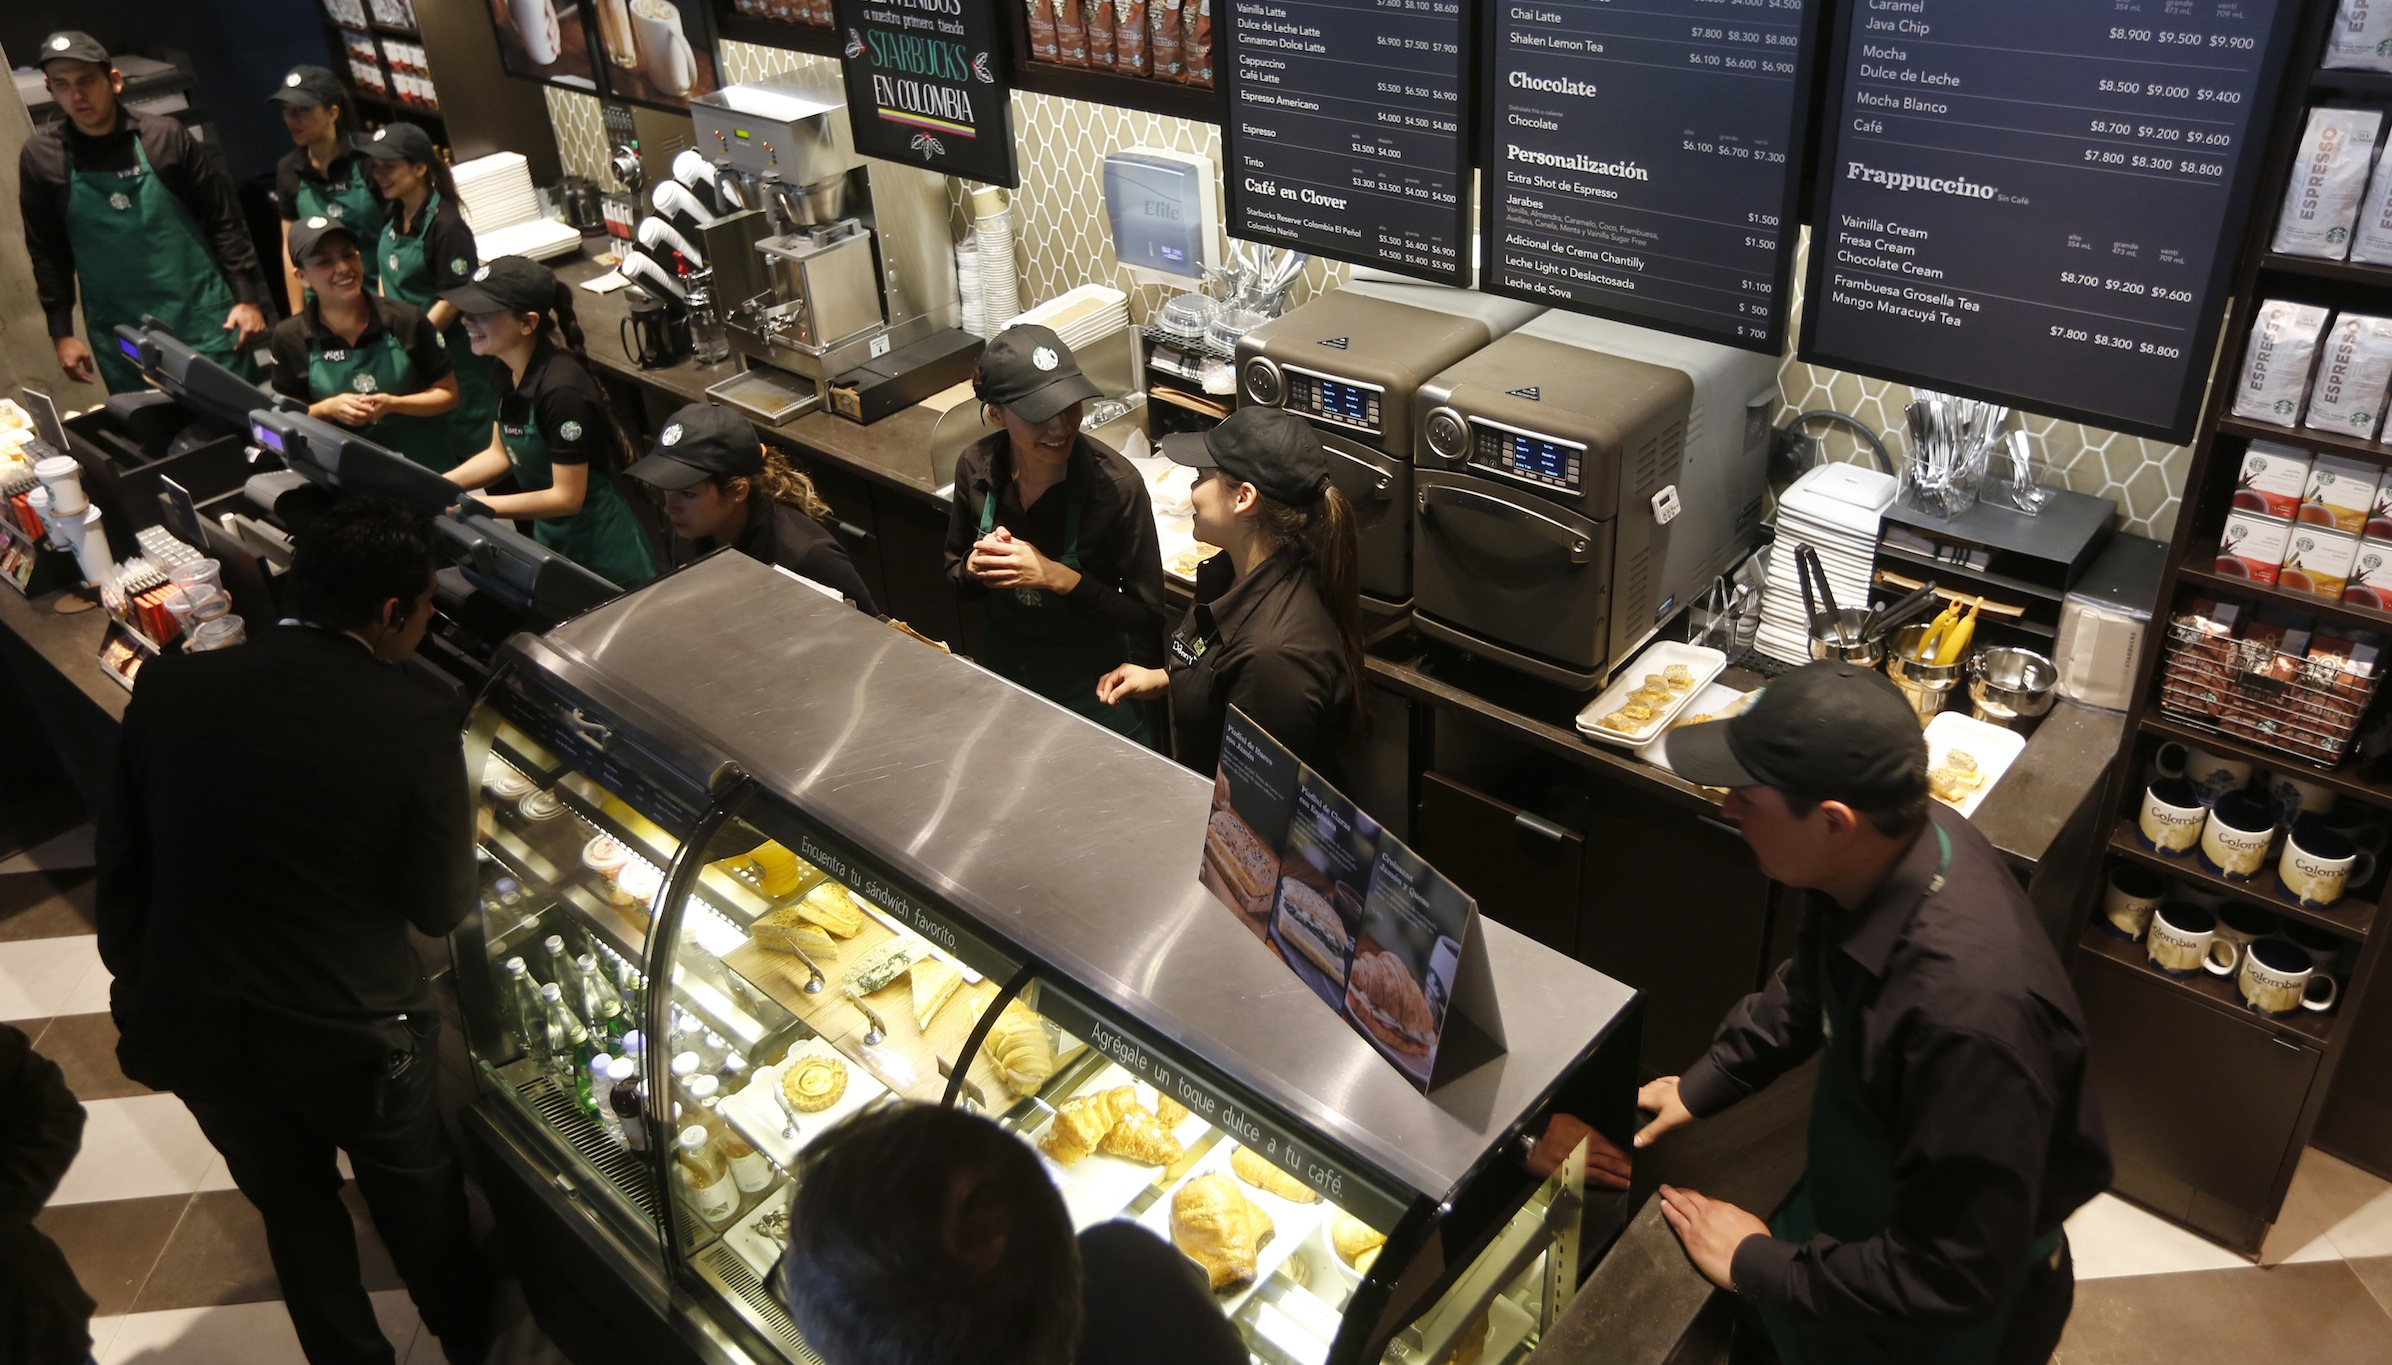 People are seen at Starbuck's first Colombian store at 93 park in Bogota July 16, 2014. Starbucks Corp opened its first shop in Colombia on Wednesday, 43 years after the world's biggest coffee chain first started buying beans from the country famous for its premium arabica coffee named after fictional coffee farmer Juan Valdez. REUTERS/John Vizcaino (COLOMBIA - Tags: BUSINESS) - RTR3YXSO